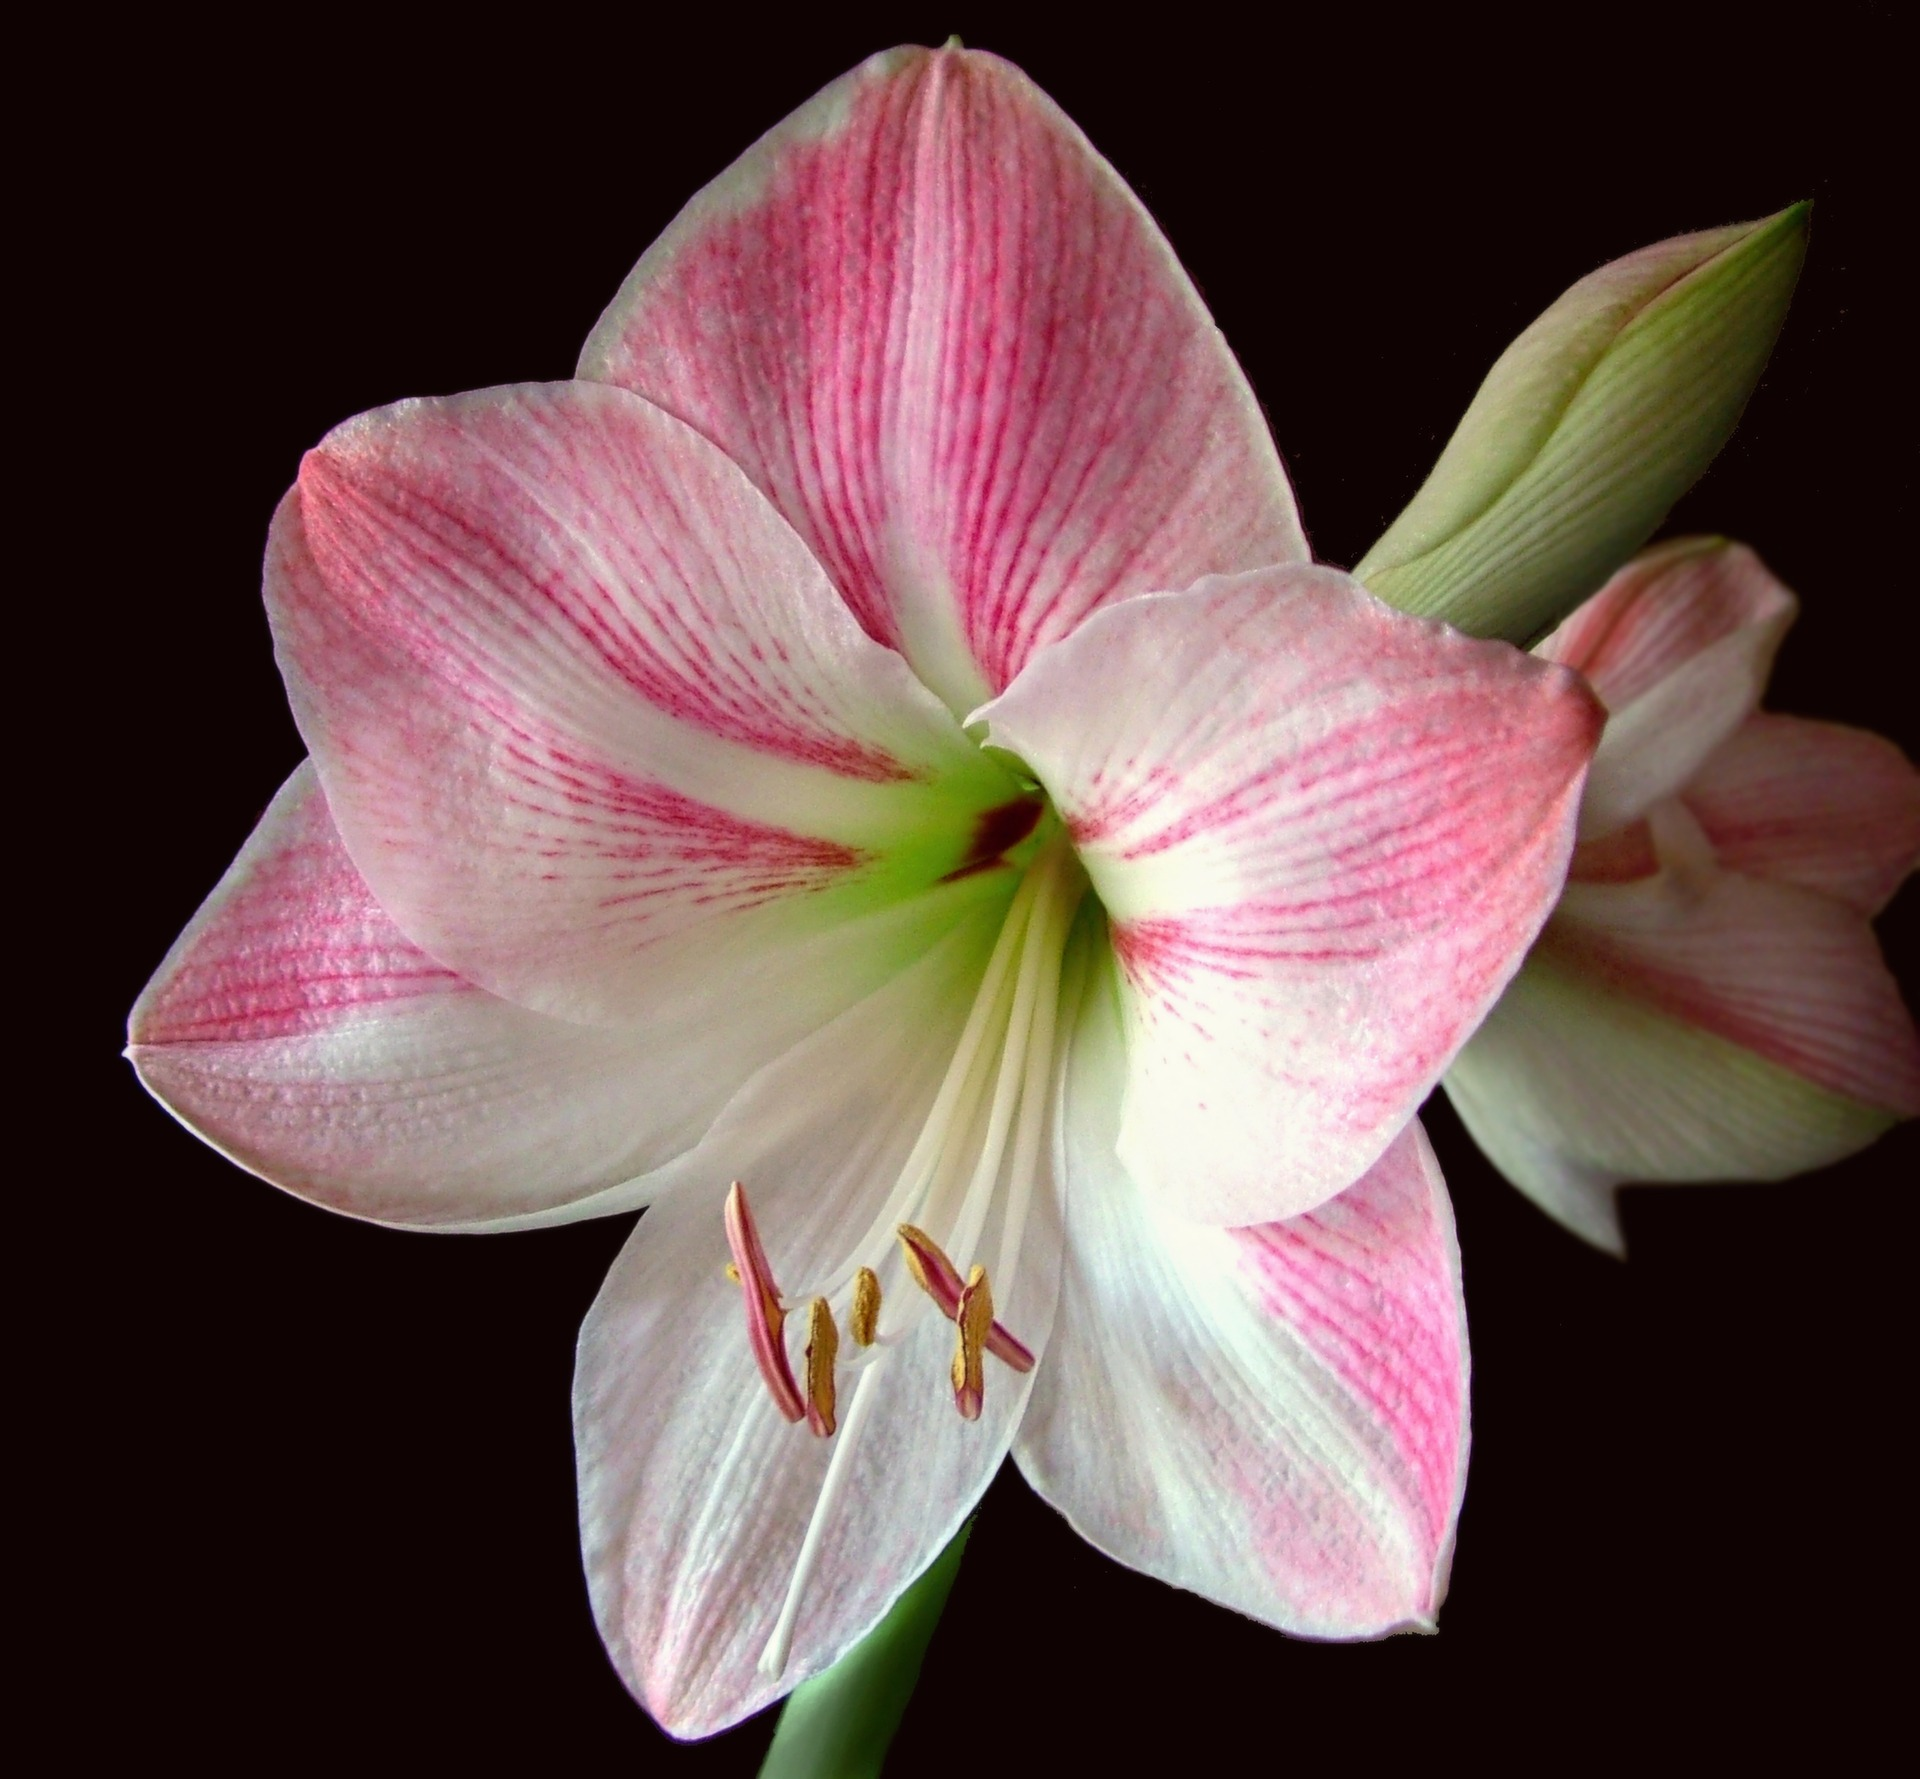 Equinox And Solstice >> Caring for Amaryllis in the Winter | Continuous Amaryllis Blooms | The Old Farmer's Almanac